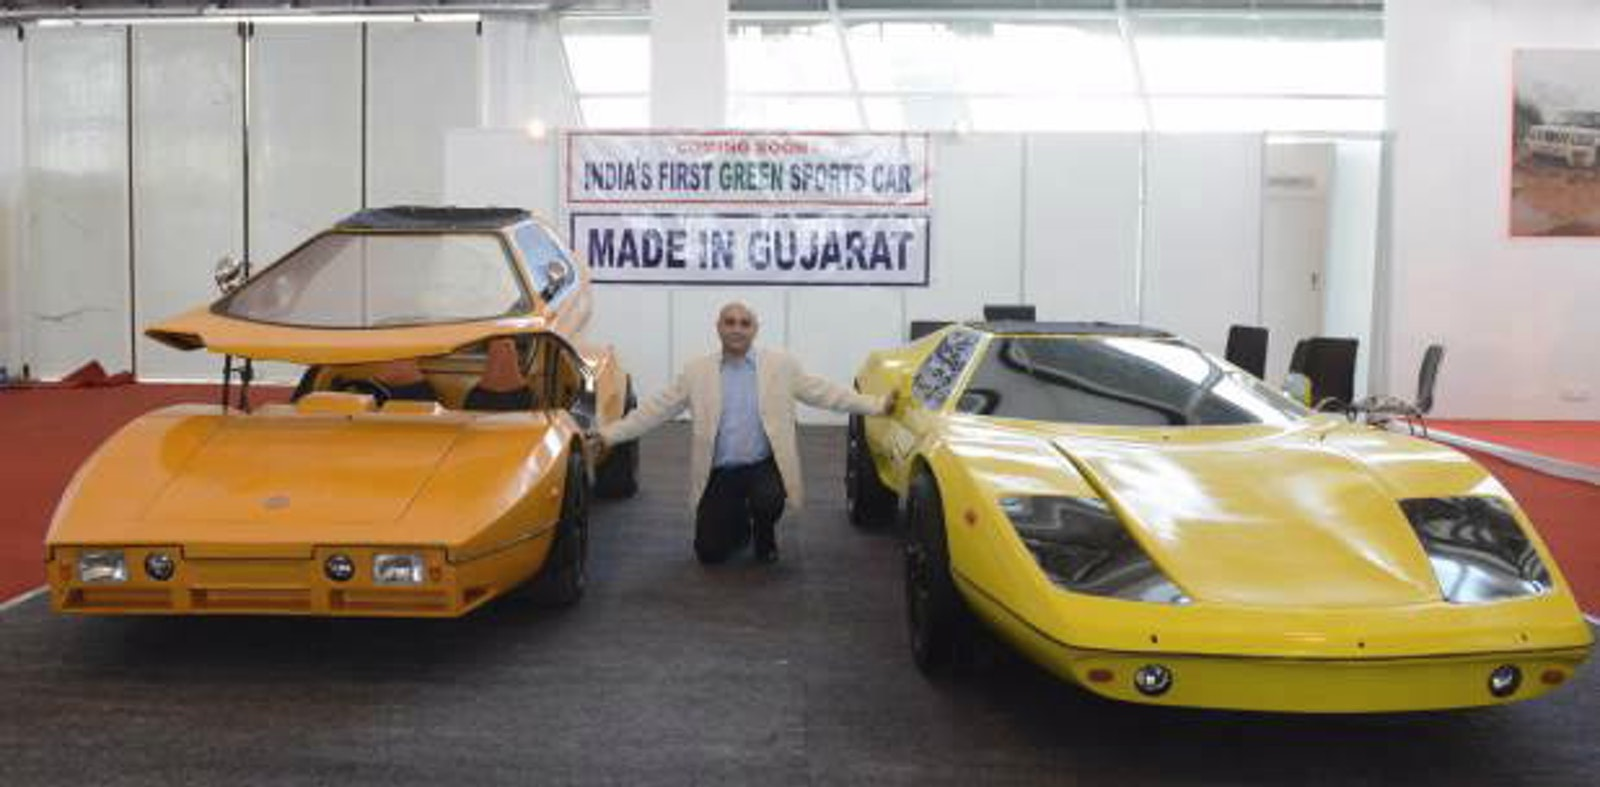 Indian supercapacitor sports car | Electric Vehicles Research